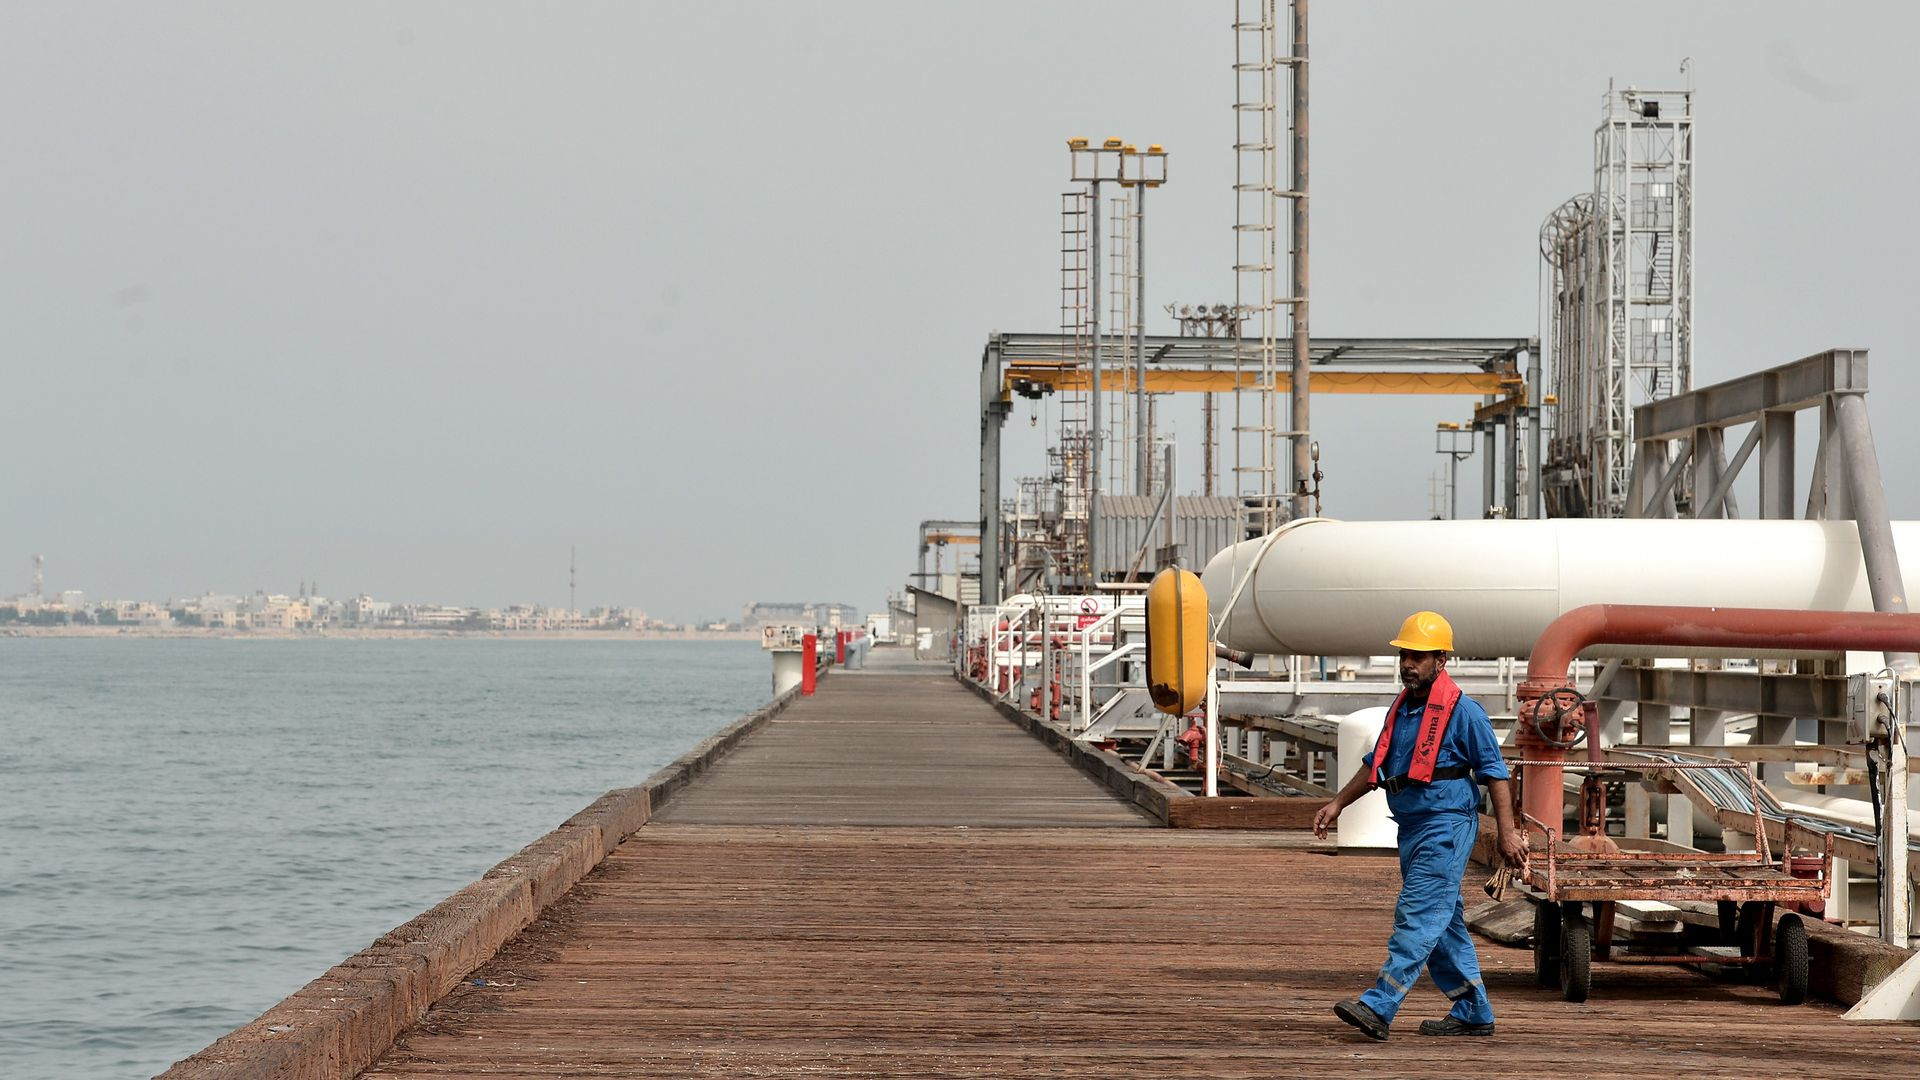 Port of Kharg Island Oil Terminal.